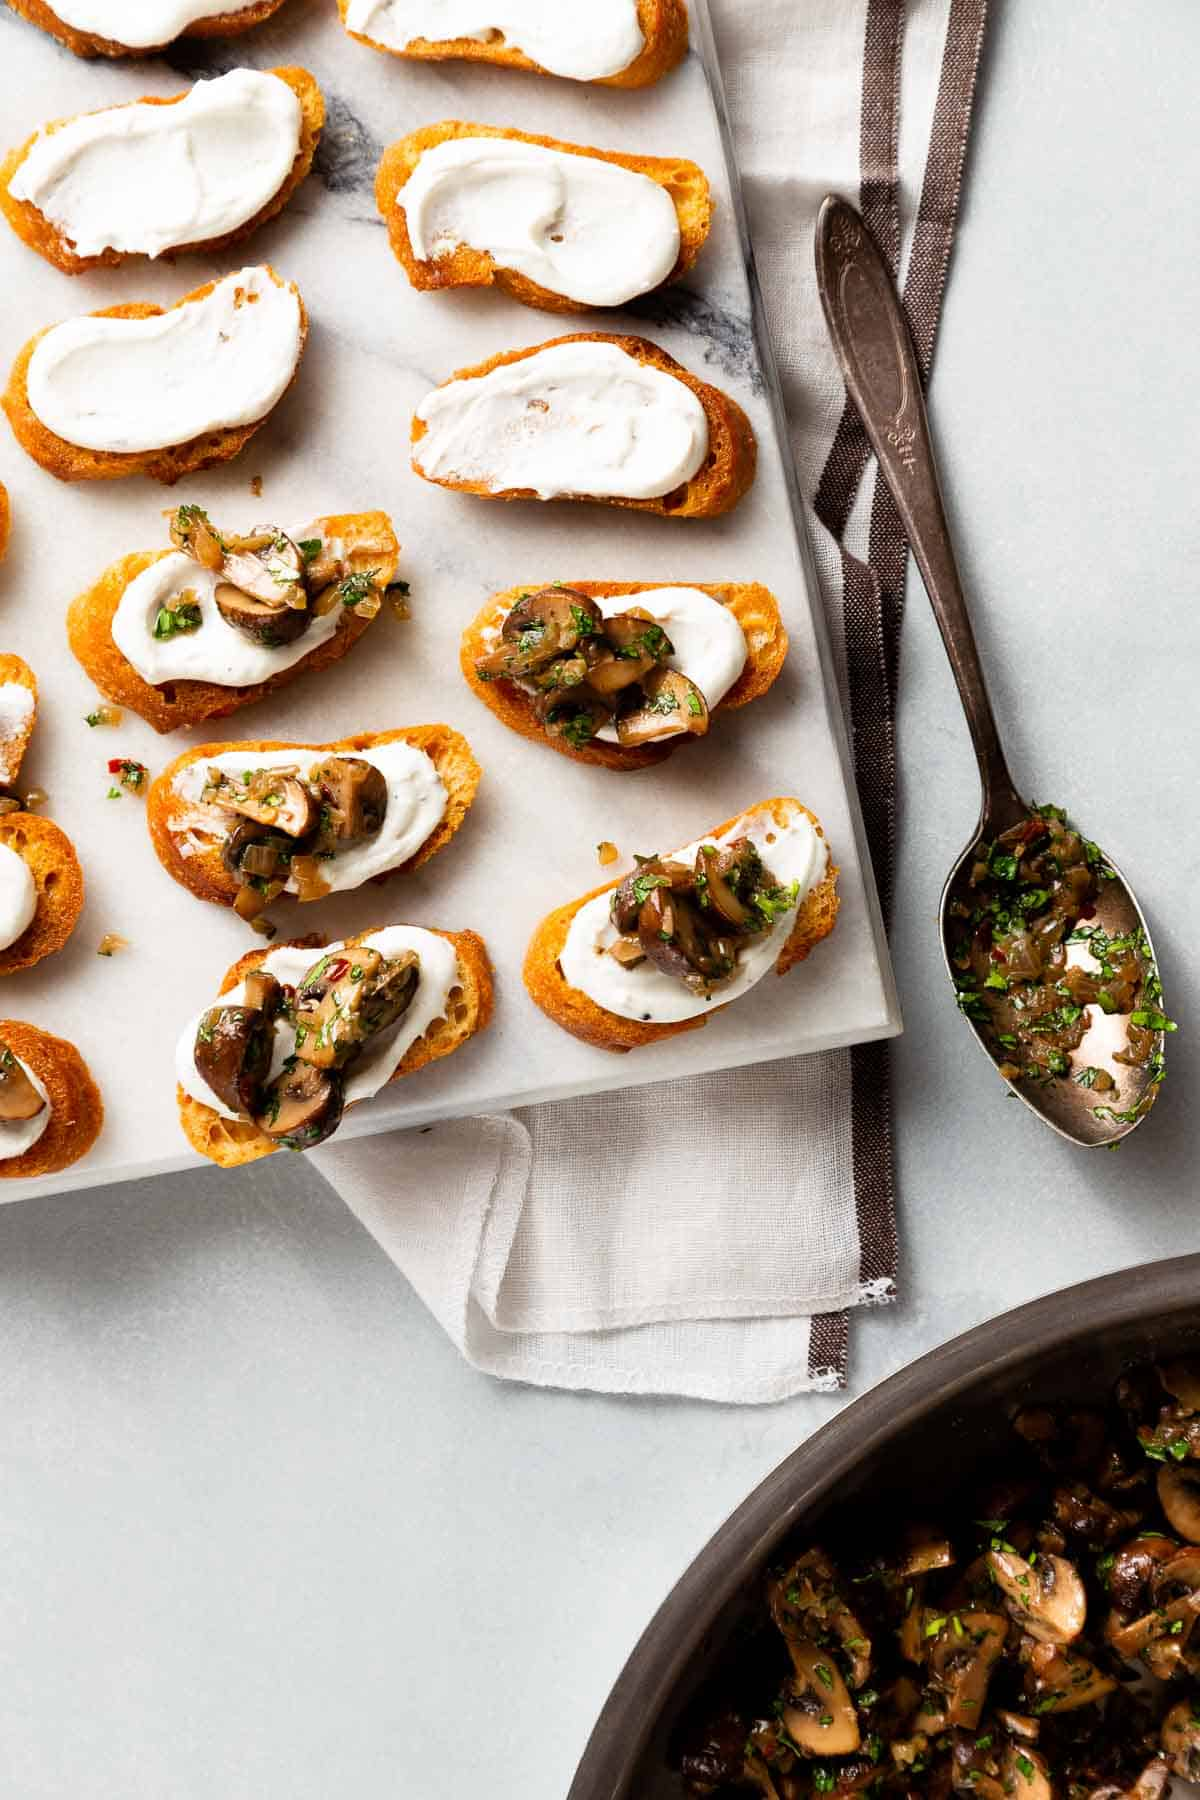 Using a spoon to scoop mushrooms on top of goat cheese spread on a crostini